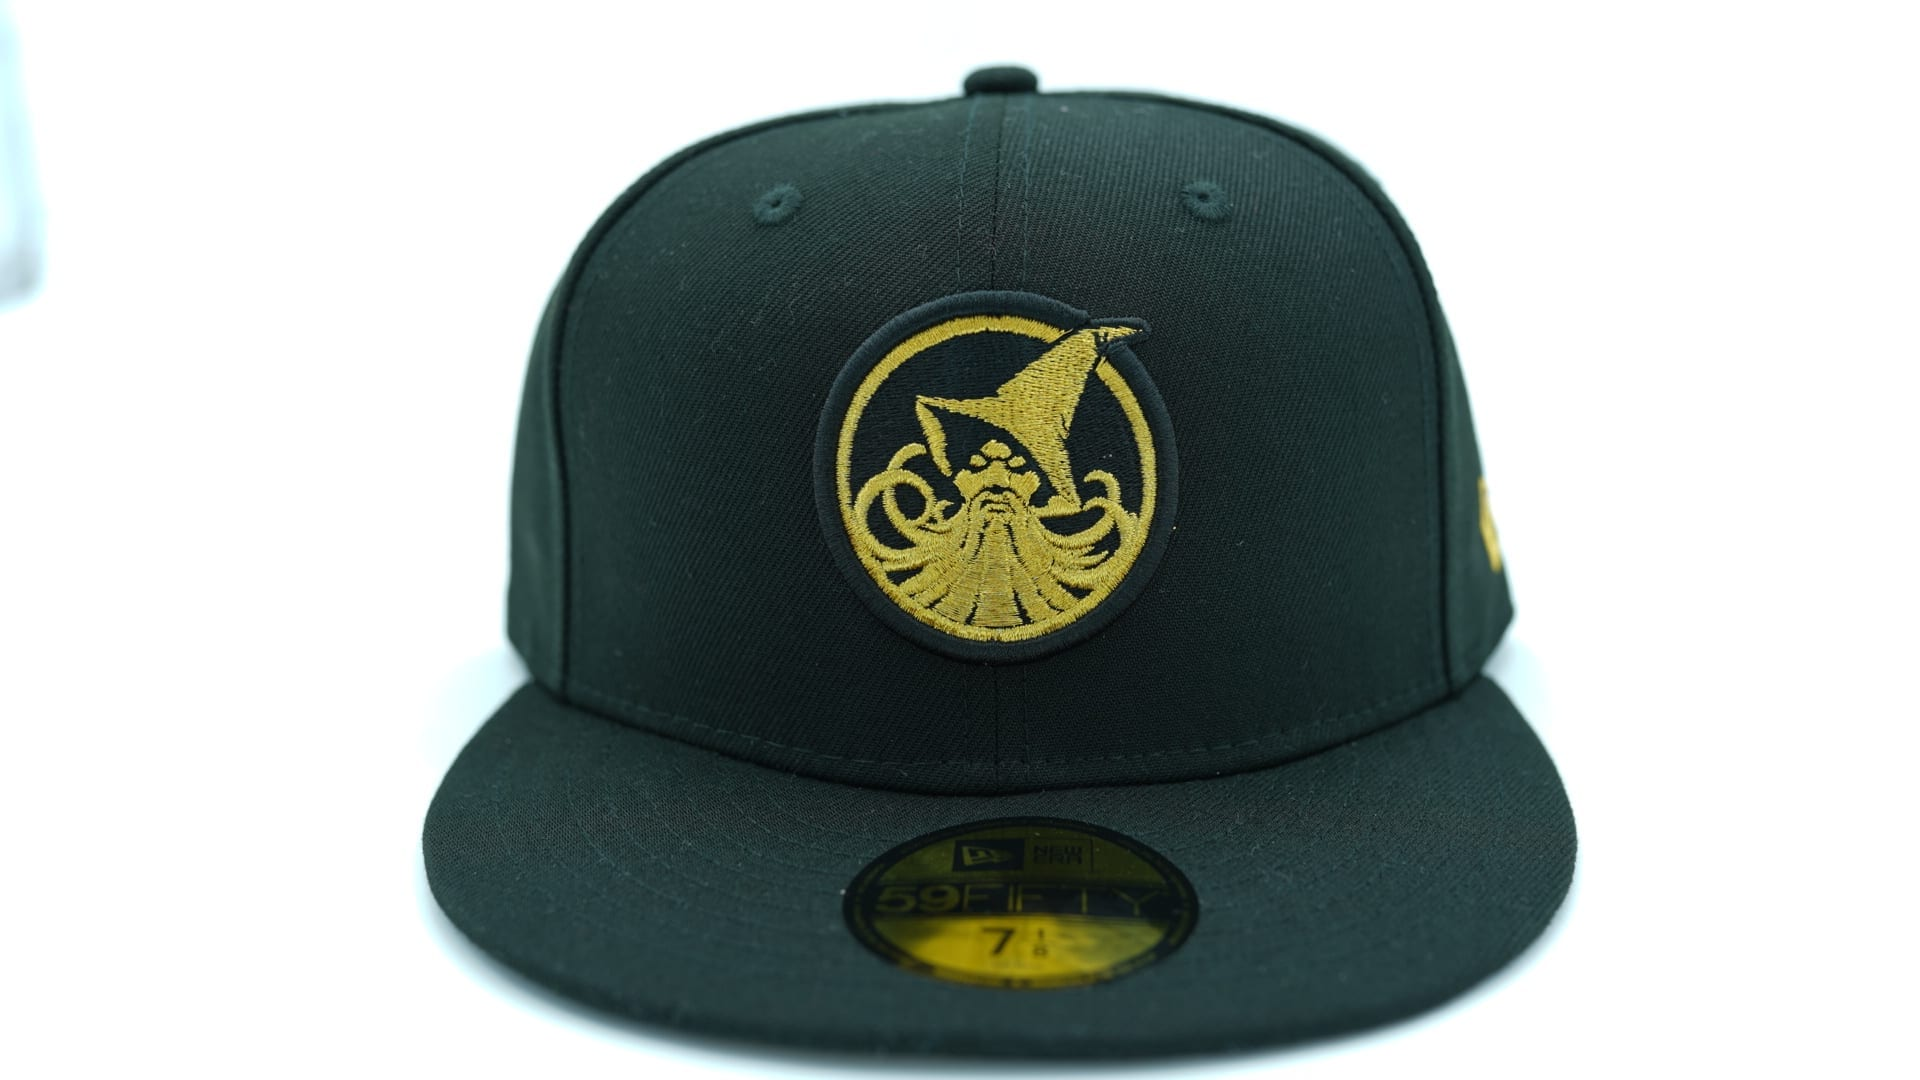 Michigan State University Spartan DH Midnight Fitted Cap by ZEPHYR x NCAAMichigan State University Spartan DH Midnight Fitted Cap by ZEPHYR x NCAA